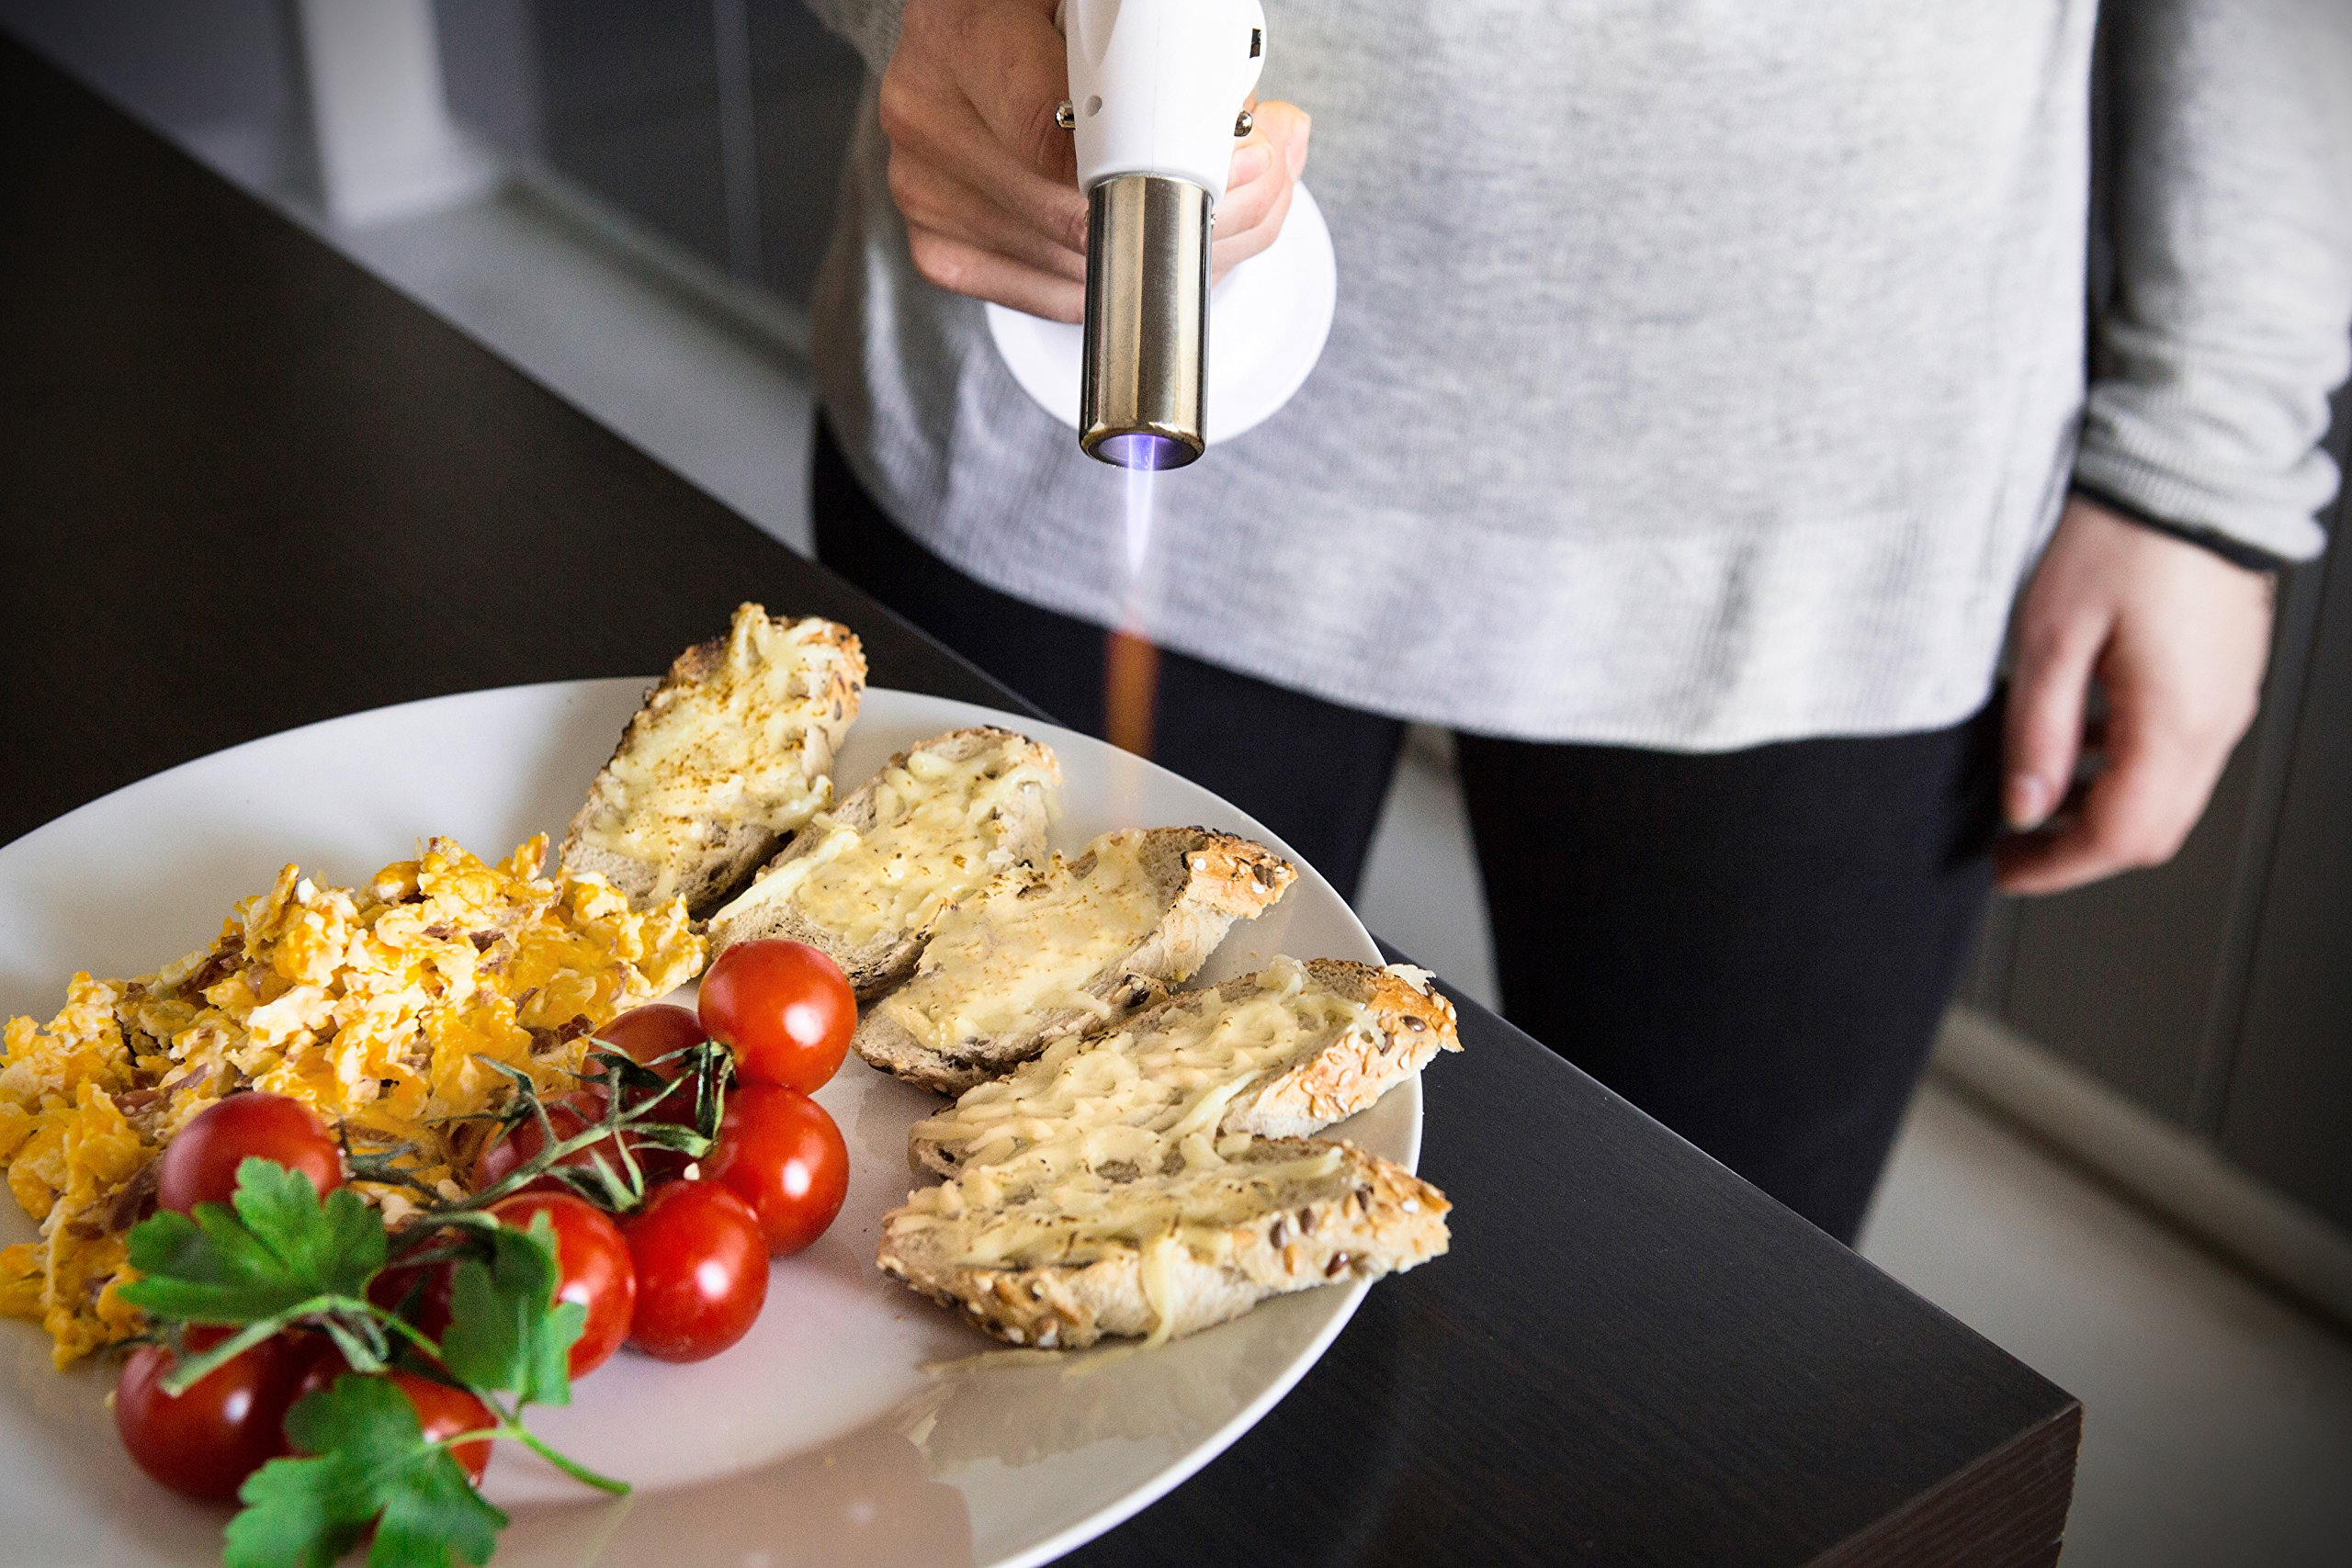 JB Chef Culinary Micro Butane Torch | Mini Torch Lighter Cooking Kitchen Blow Torch With Safety Lock & Adjustable Flame | Small Cigar Torch Lighter For Crème Brûlée, Soldering, Welding Torch & More by JB Chef (Image #4)